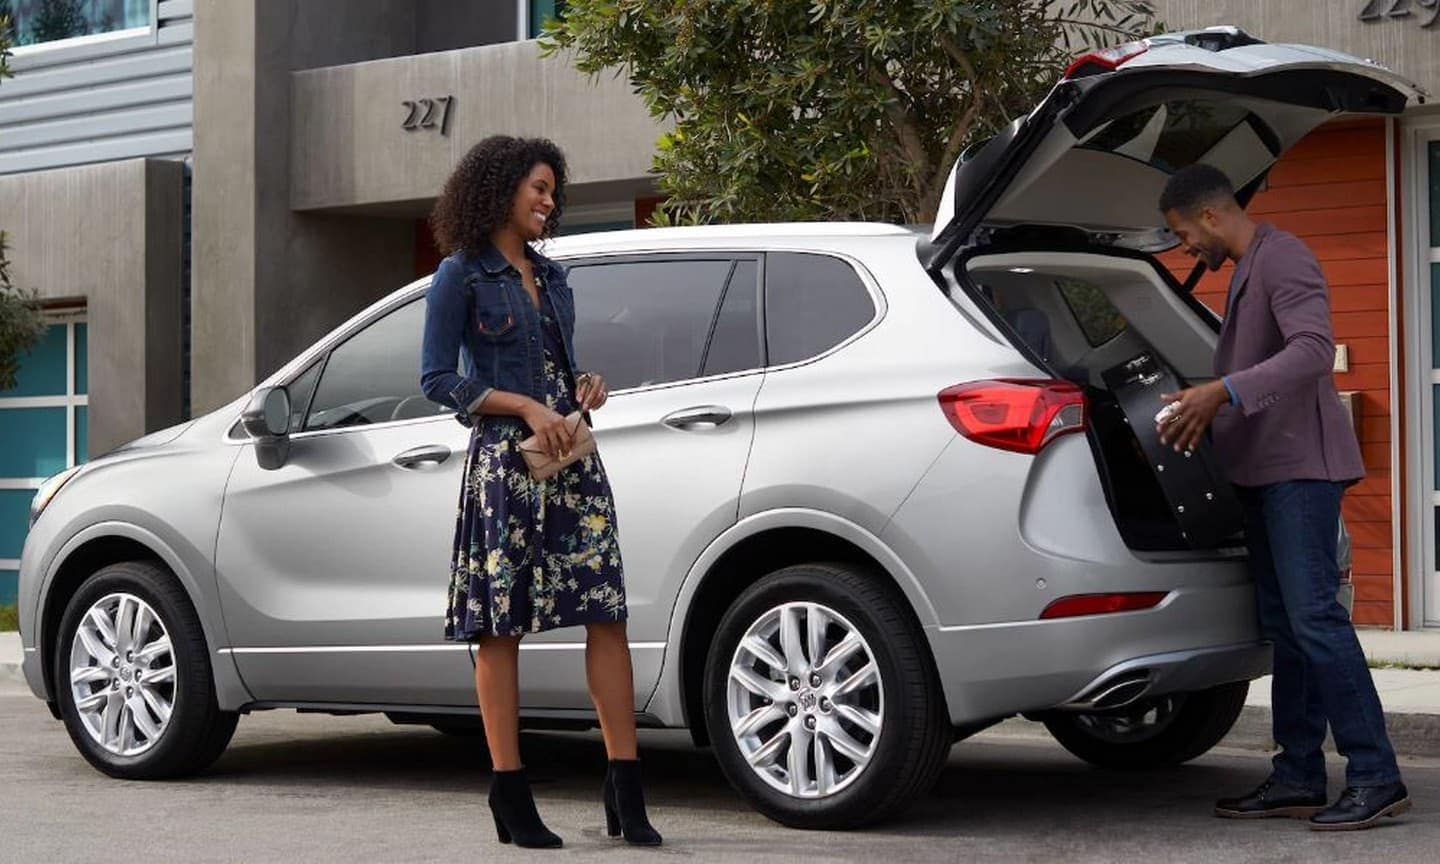 2019 Buick Envision in silver open trunk loading cargo